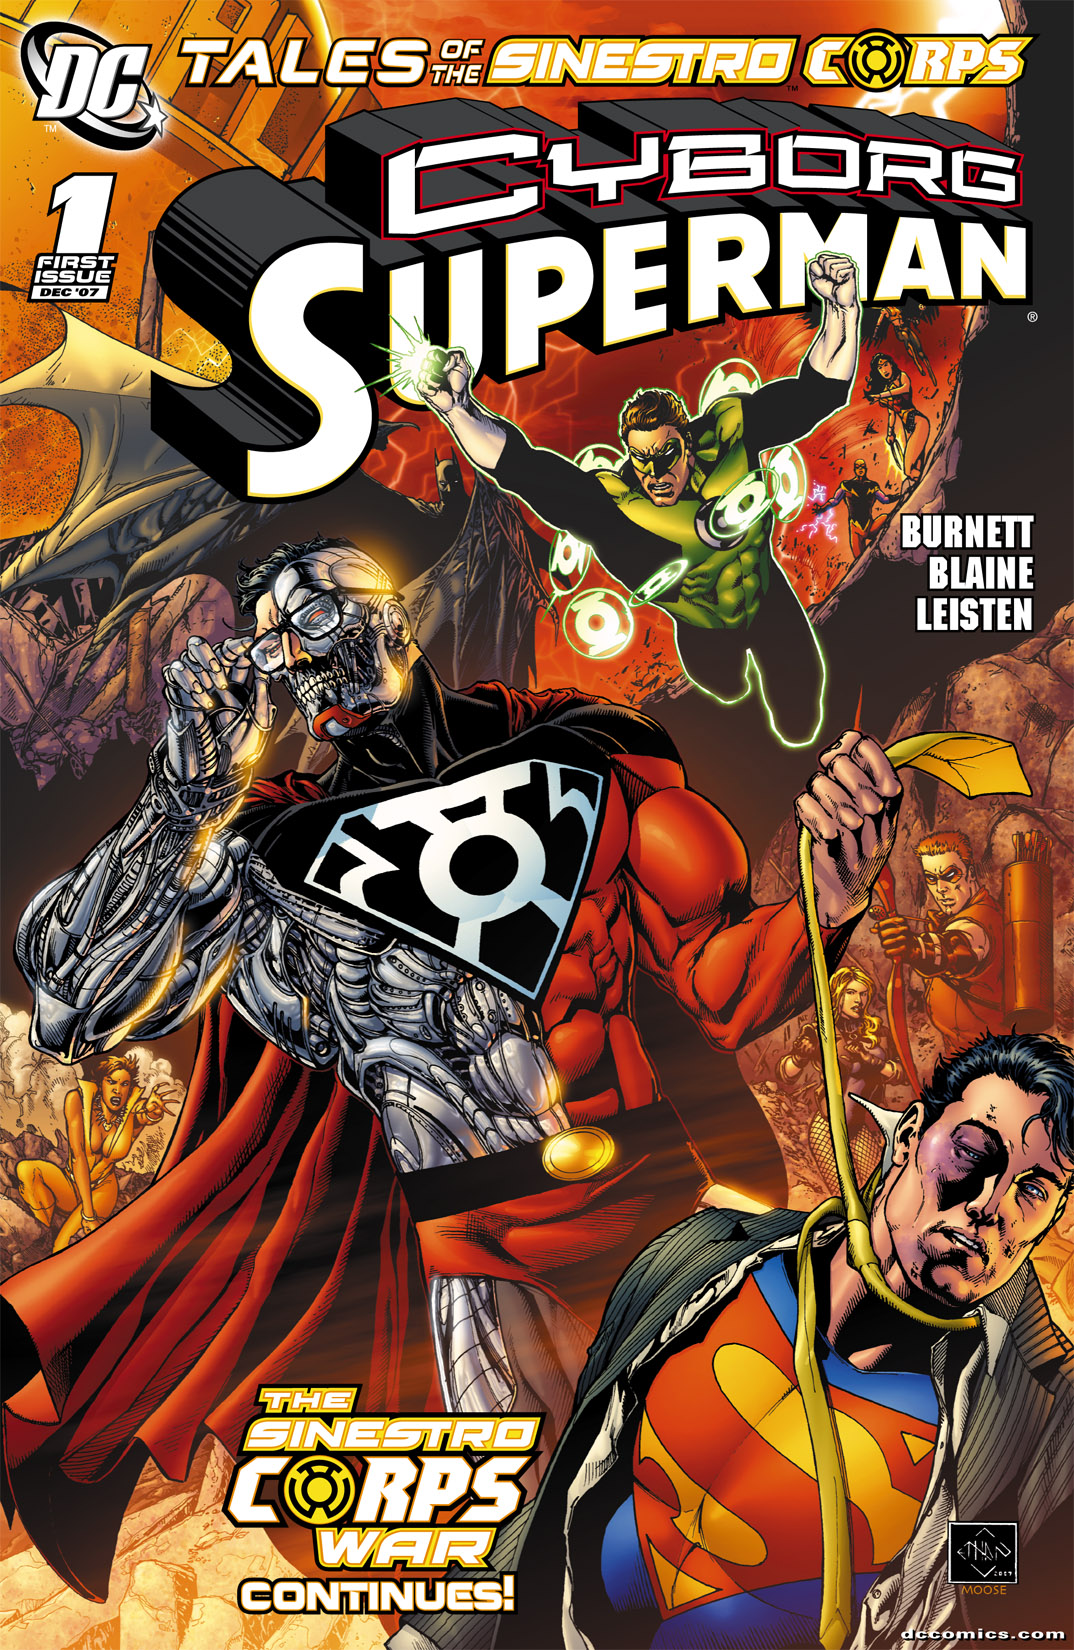 Tales of the Sinestro Corps: Cyborg Superman Full Page 1